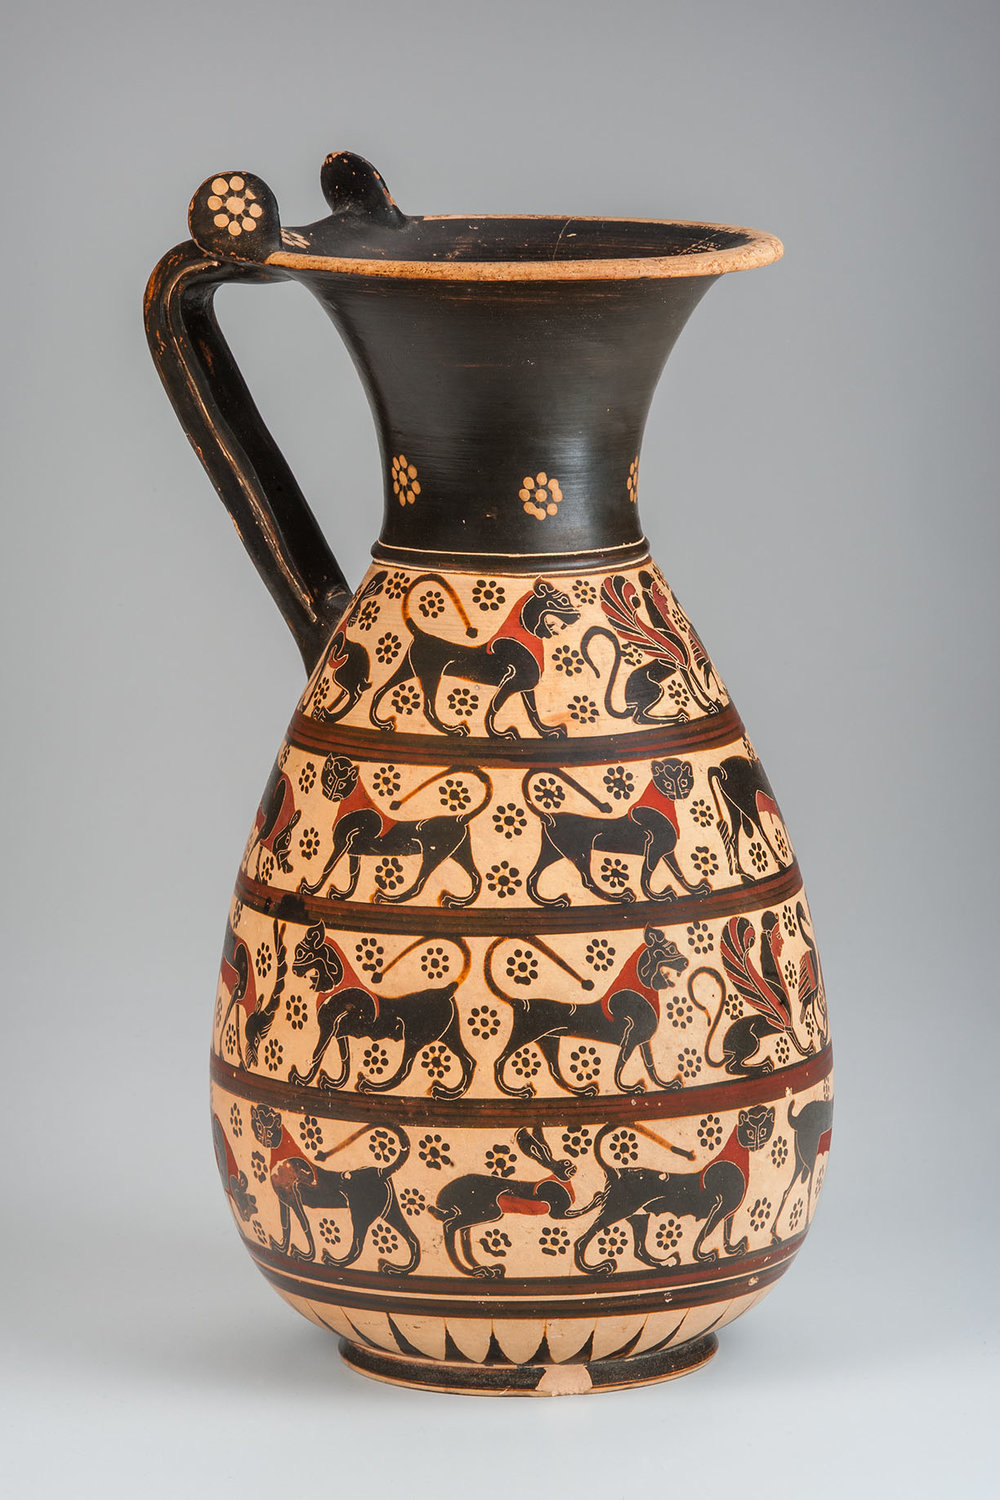 Corinthian Olpe from 6th century BCE. In the collection of the Indiana University Art Museum.